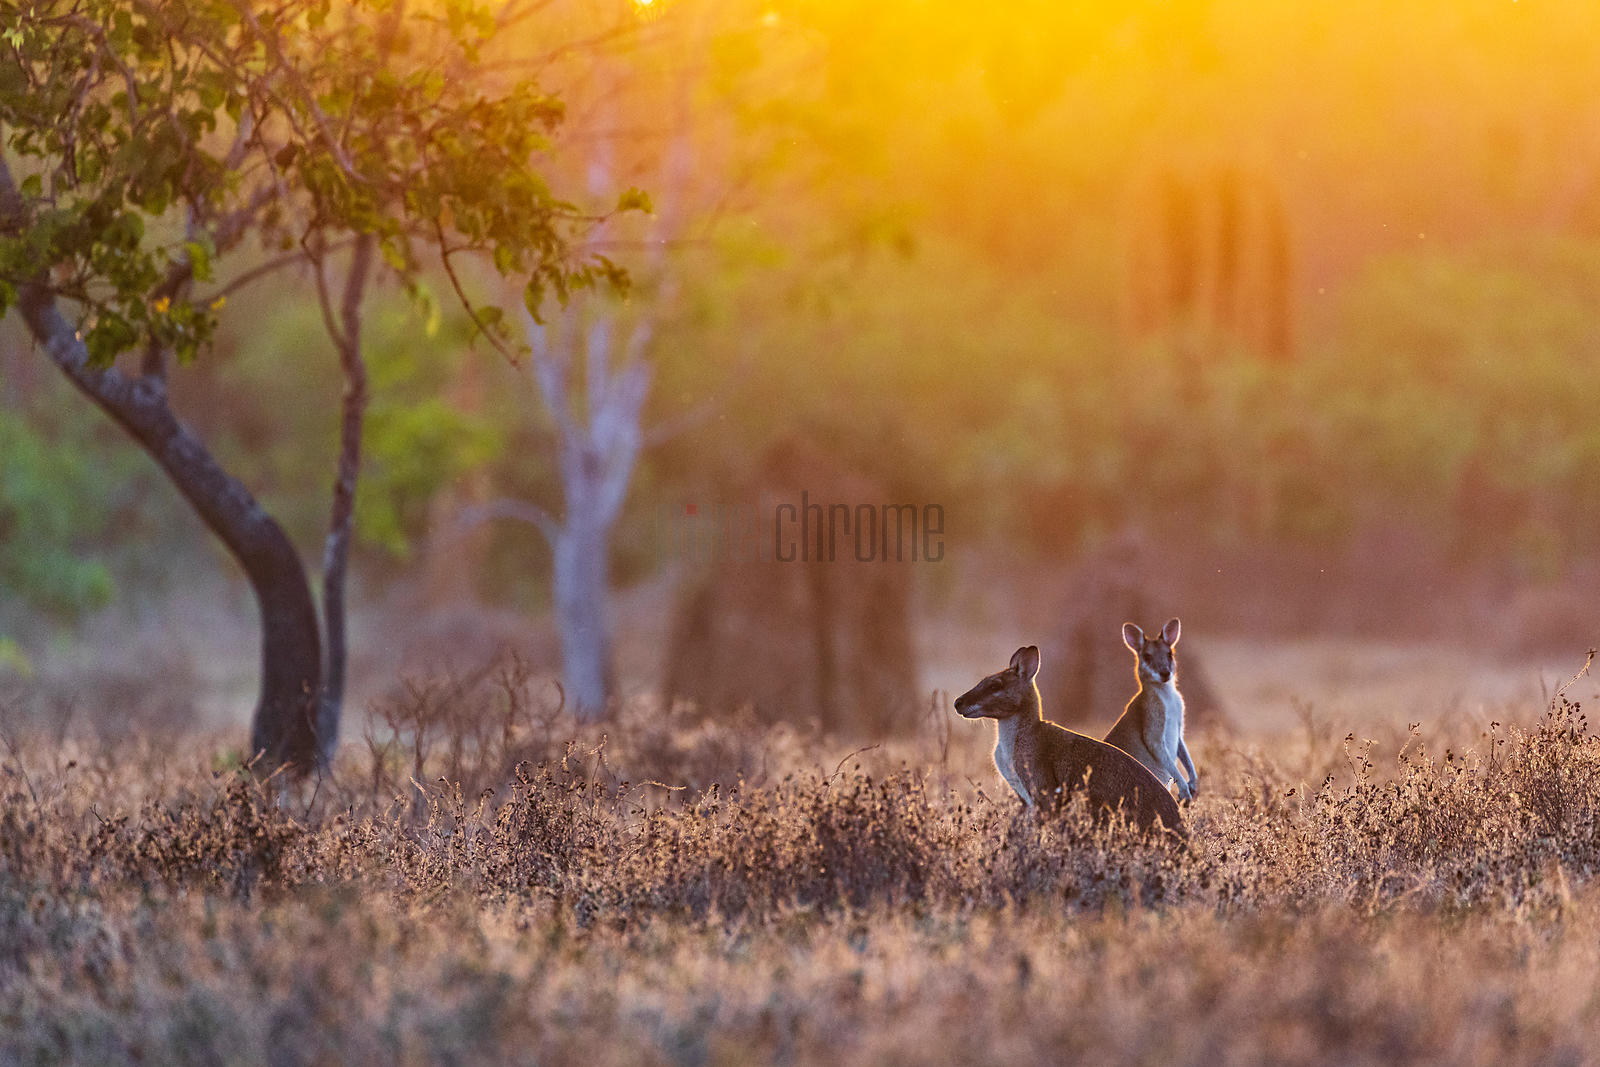 Agile Wallabies in a Field at Sunrise